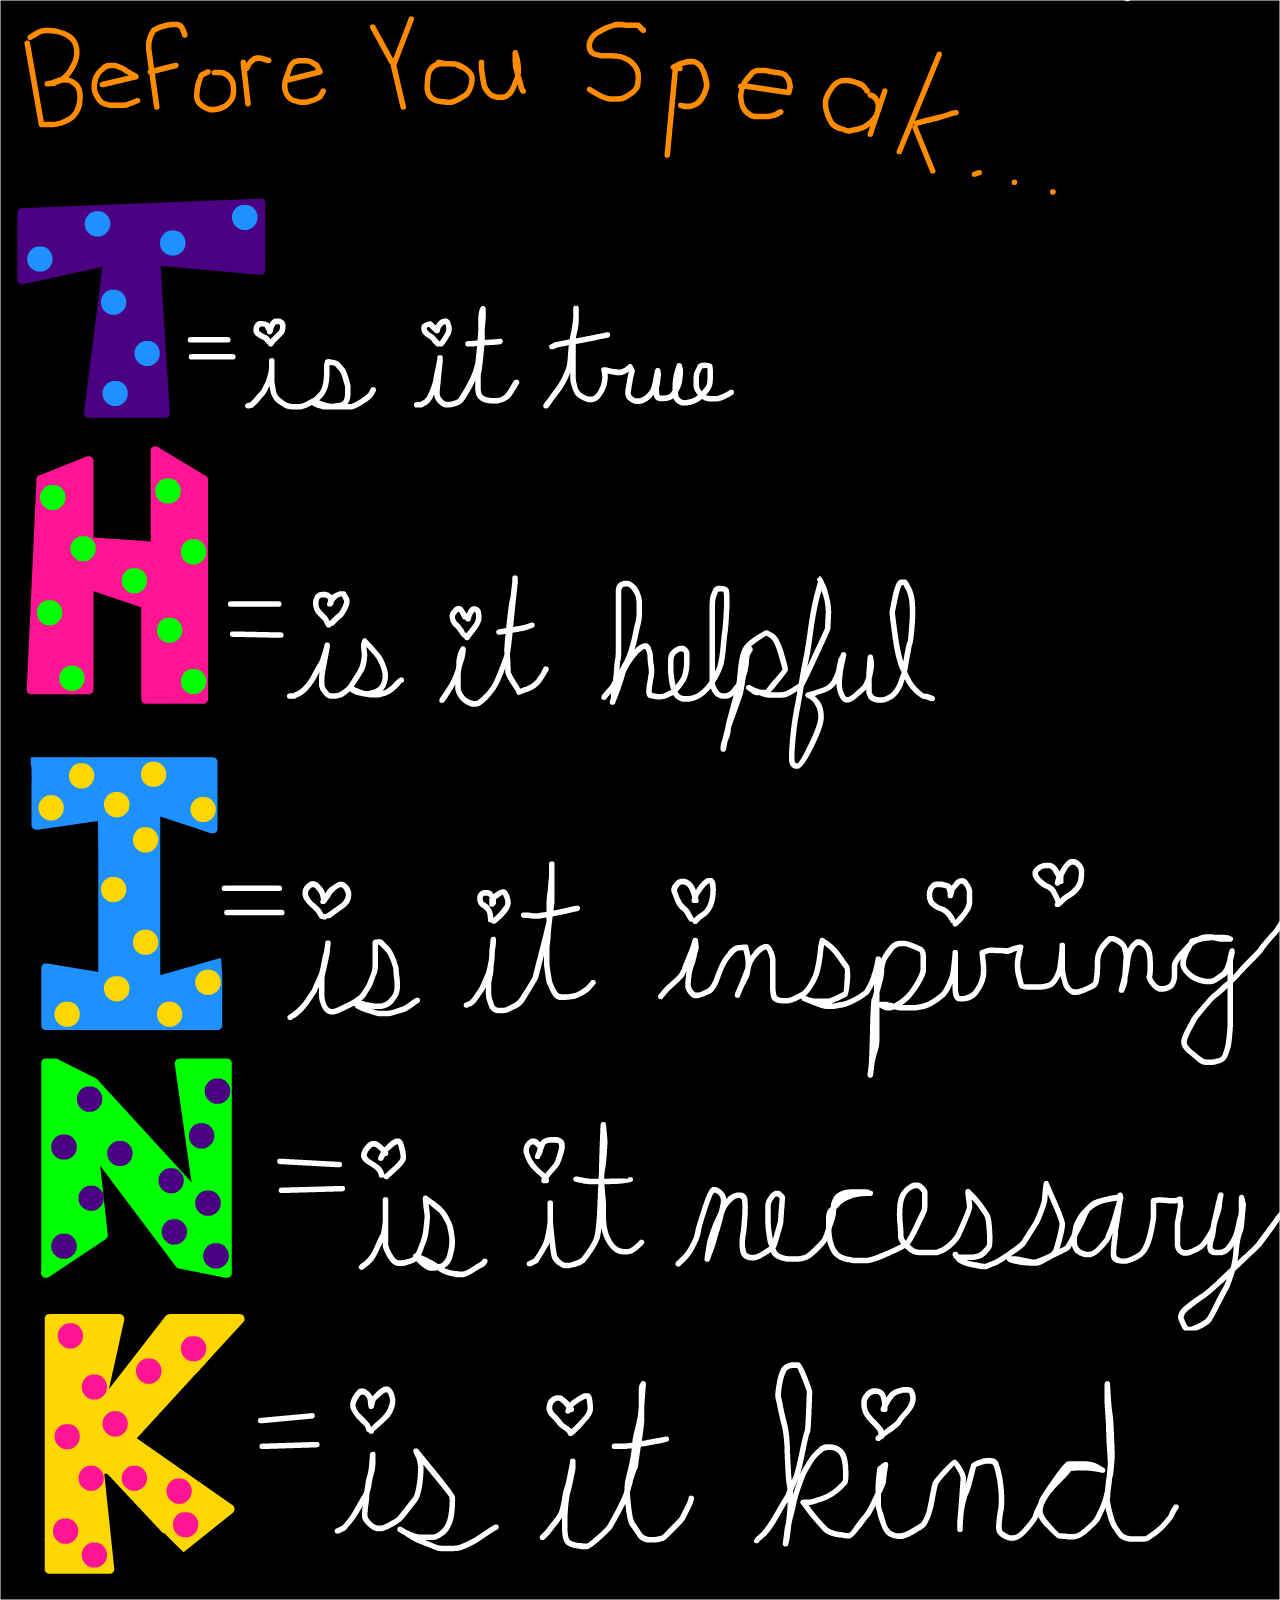 """Think!"" by Shelly on SketchPort"